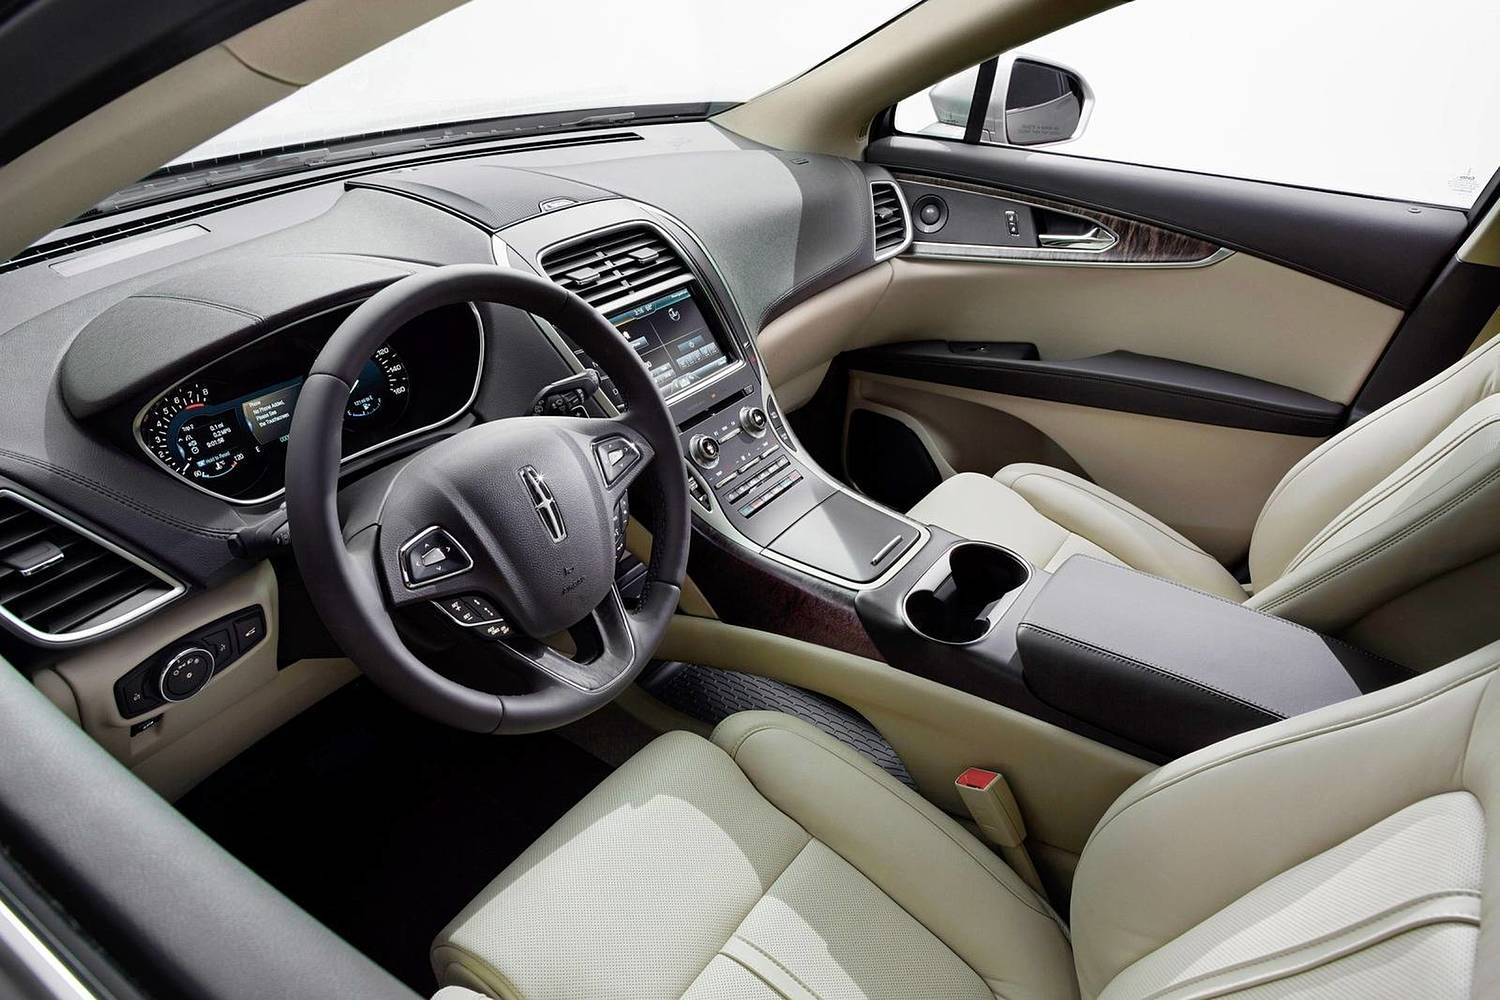 Lincoln MKX Reserve 4dr SUV Interior (2017 model year shown)